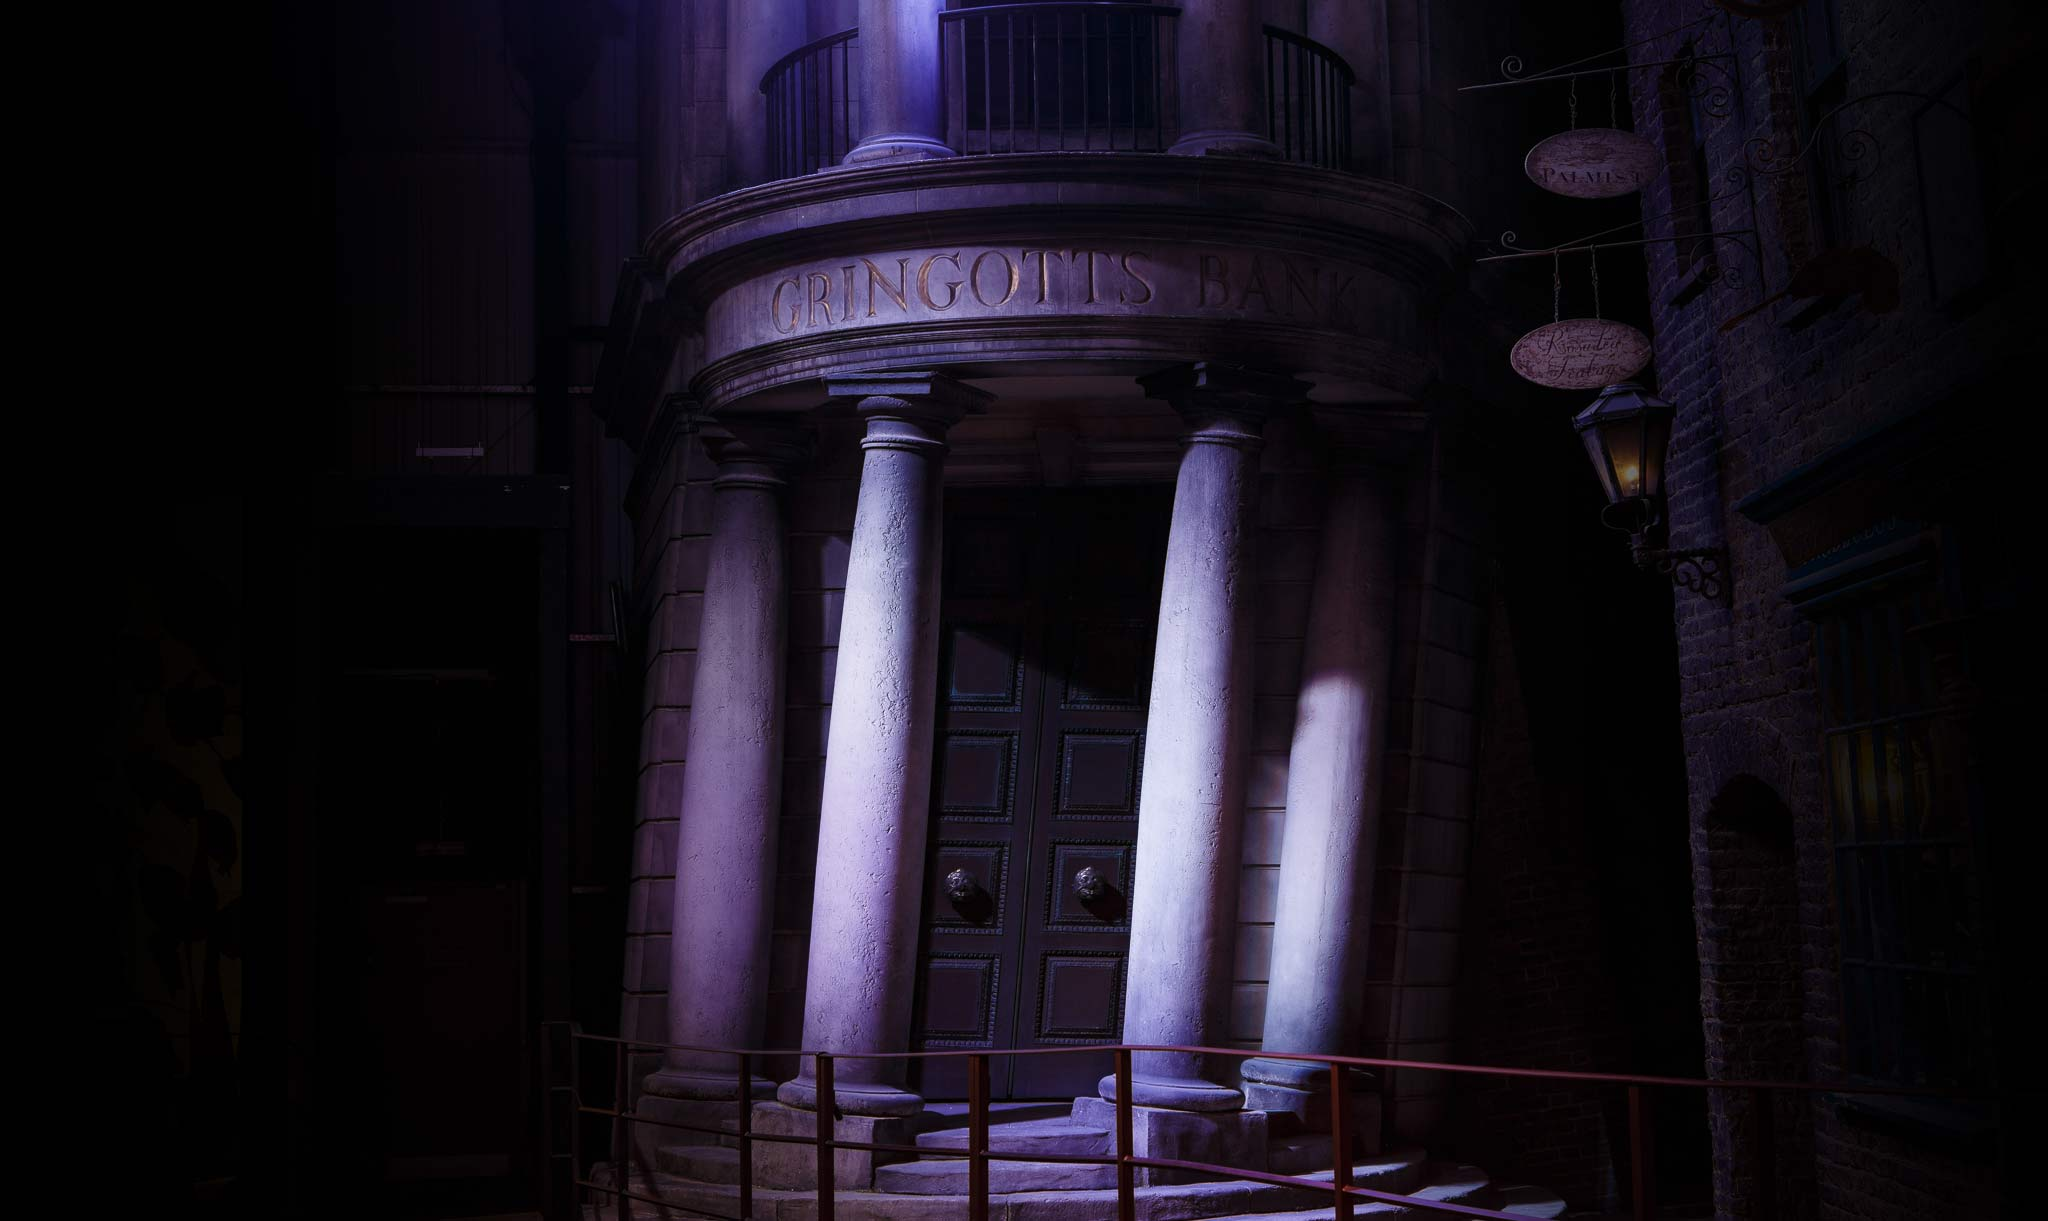 Gringotts-Diagon-Alley.jpg